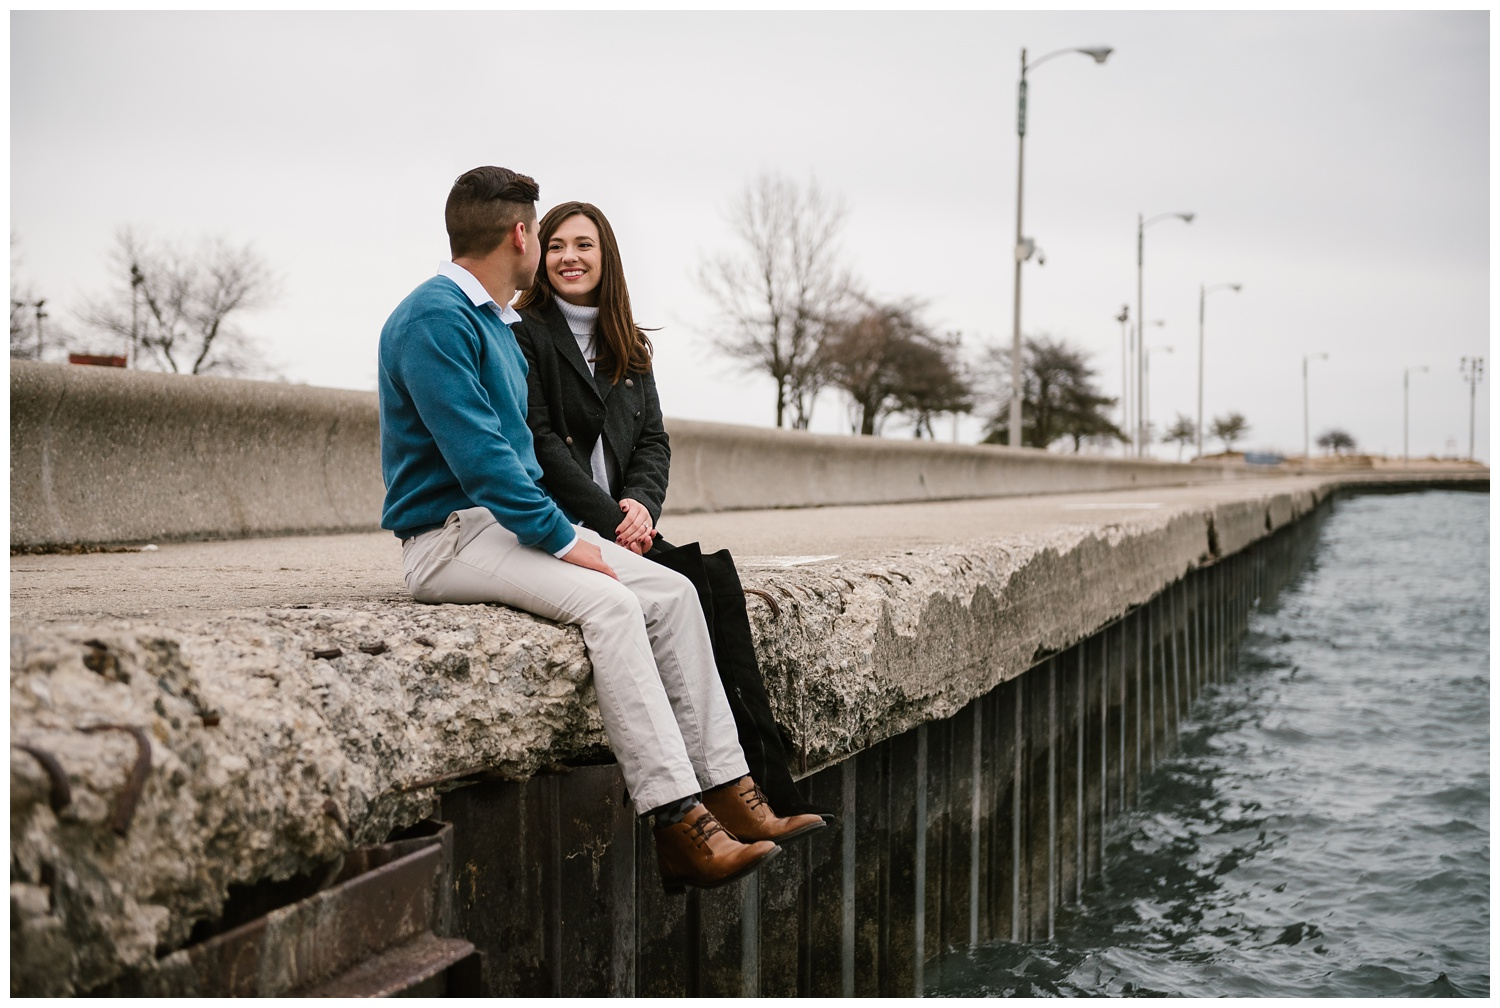 Chandlelyn + Chris - Windy Engagement Session at North Avenue Beach, north avenue beach, chicago, illinois, skyline, hancock building, hancock tower, navy pier, lake michigan, beach, cold, windy, breezy, engagement, session, shoot, photography, photographer, iron and honey, melissa ferrara